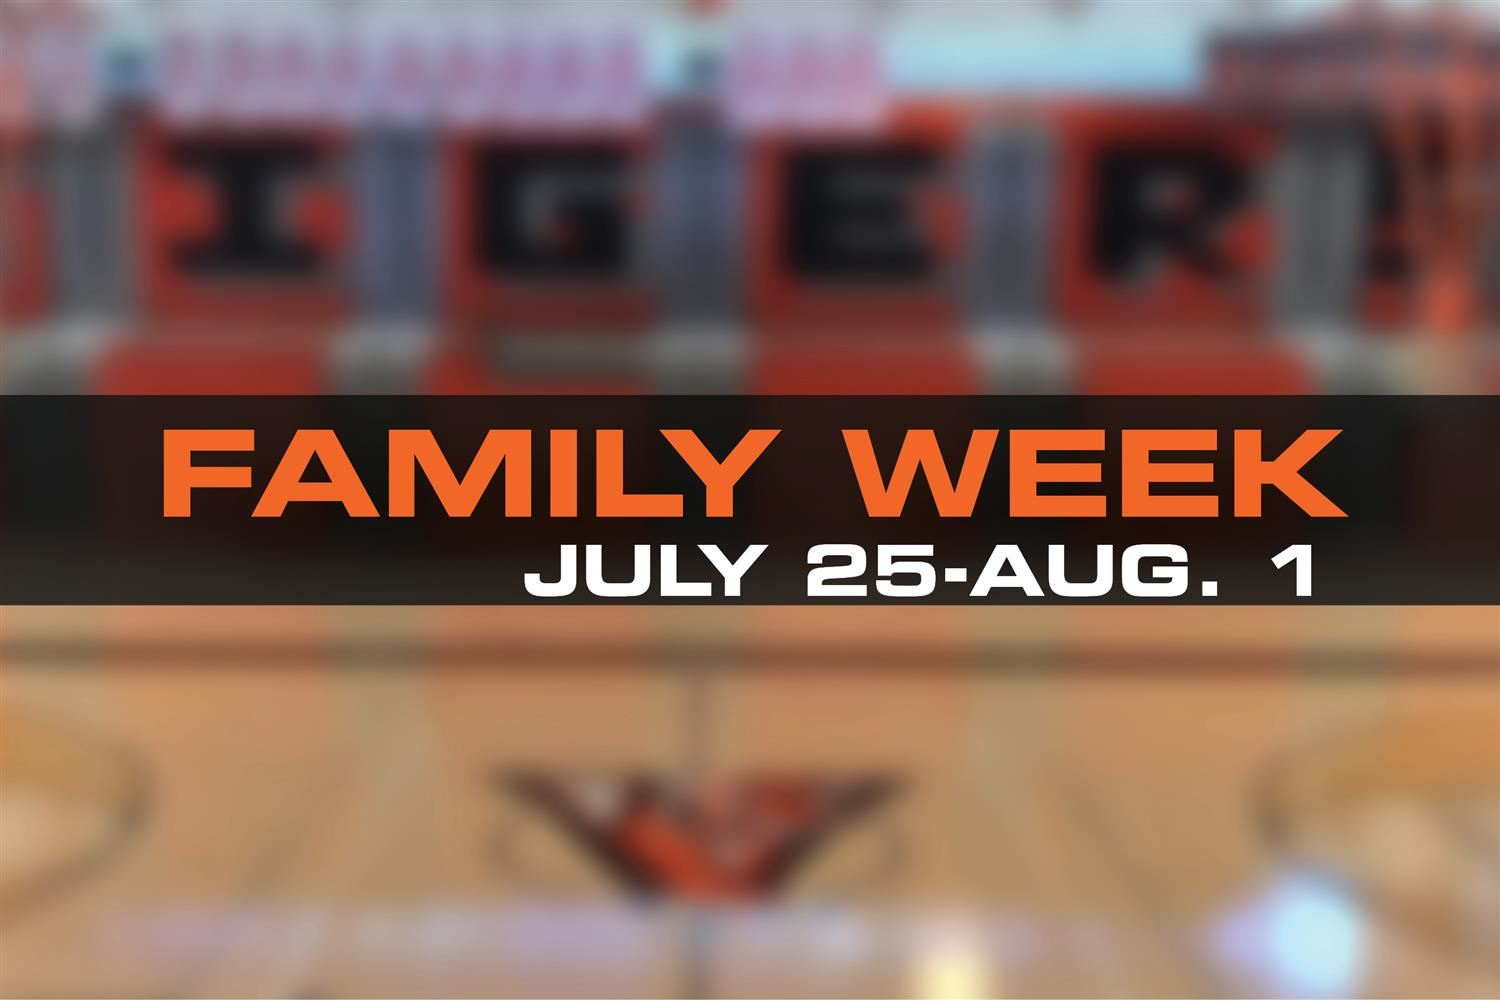 family week july 25-aug. 1